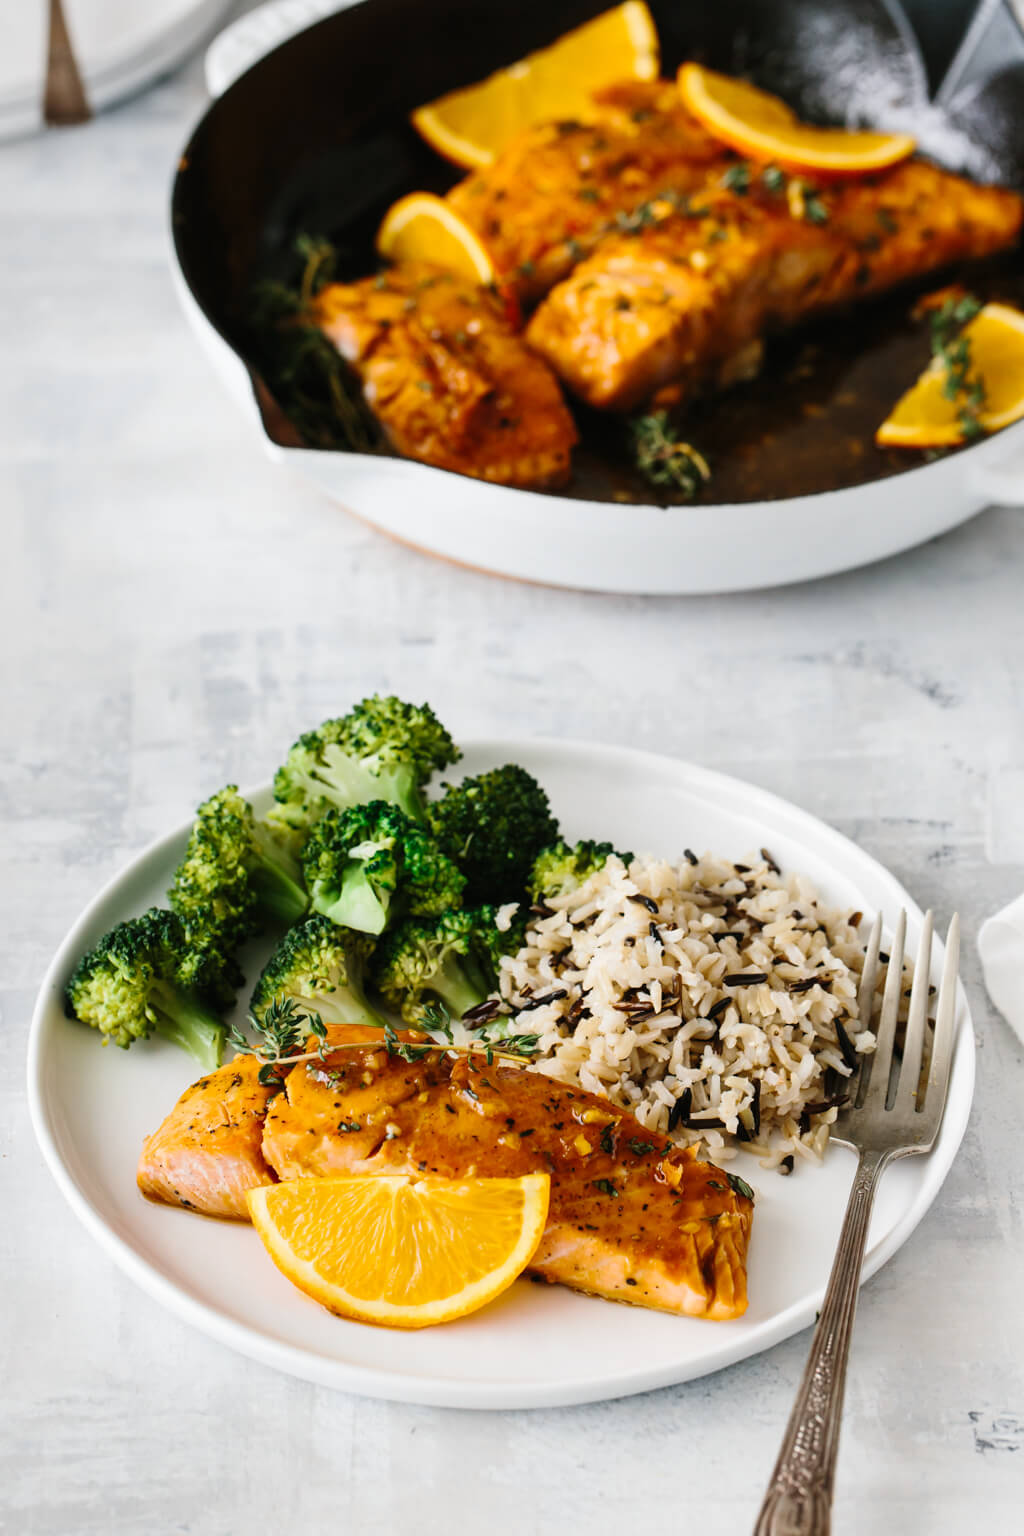 A white plate with salmon, rice and broccoli.